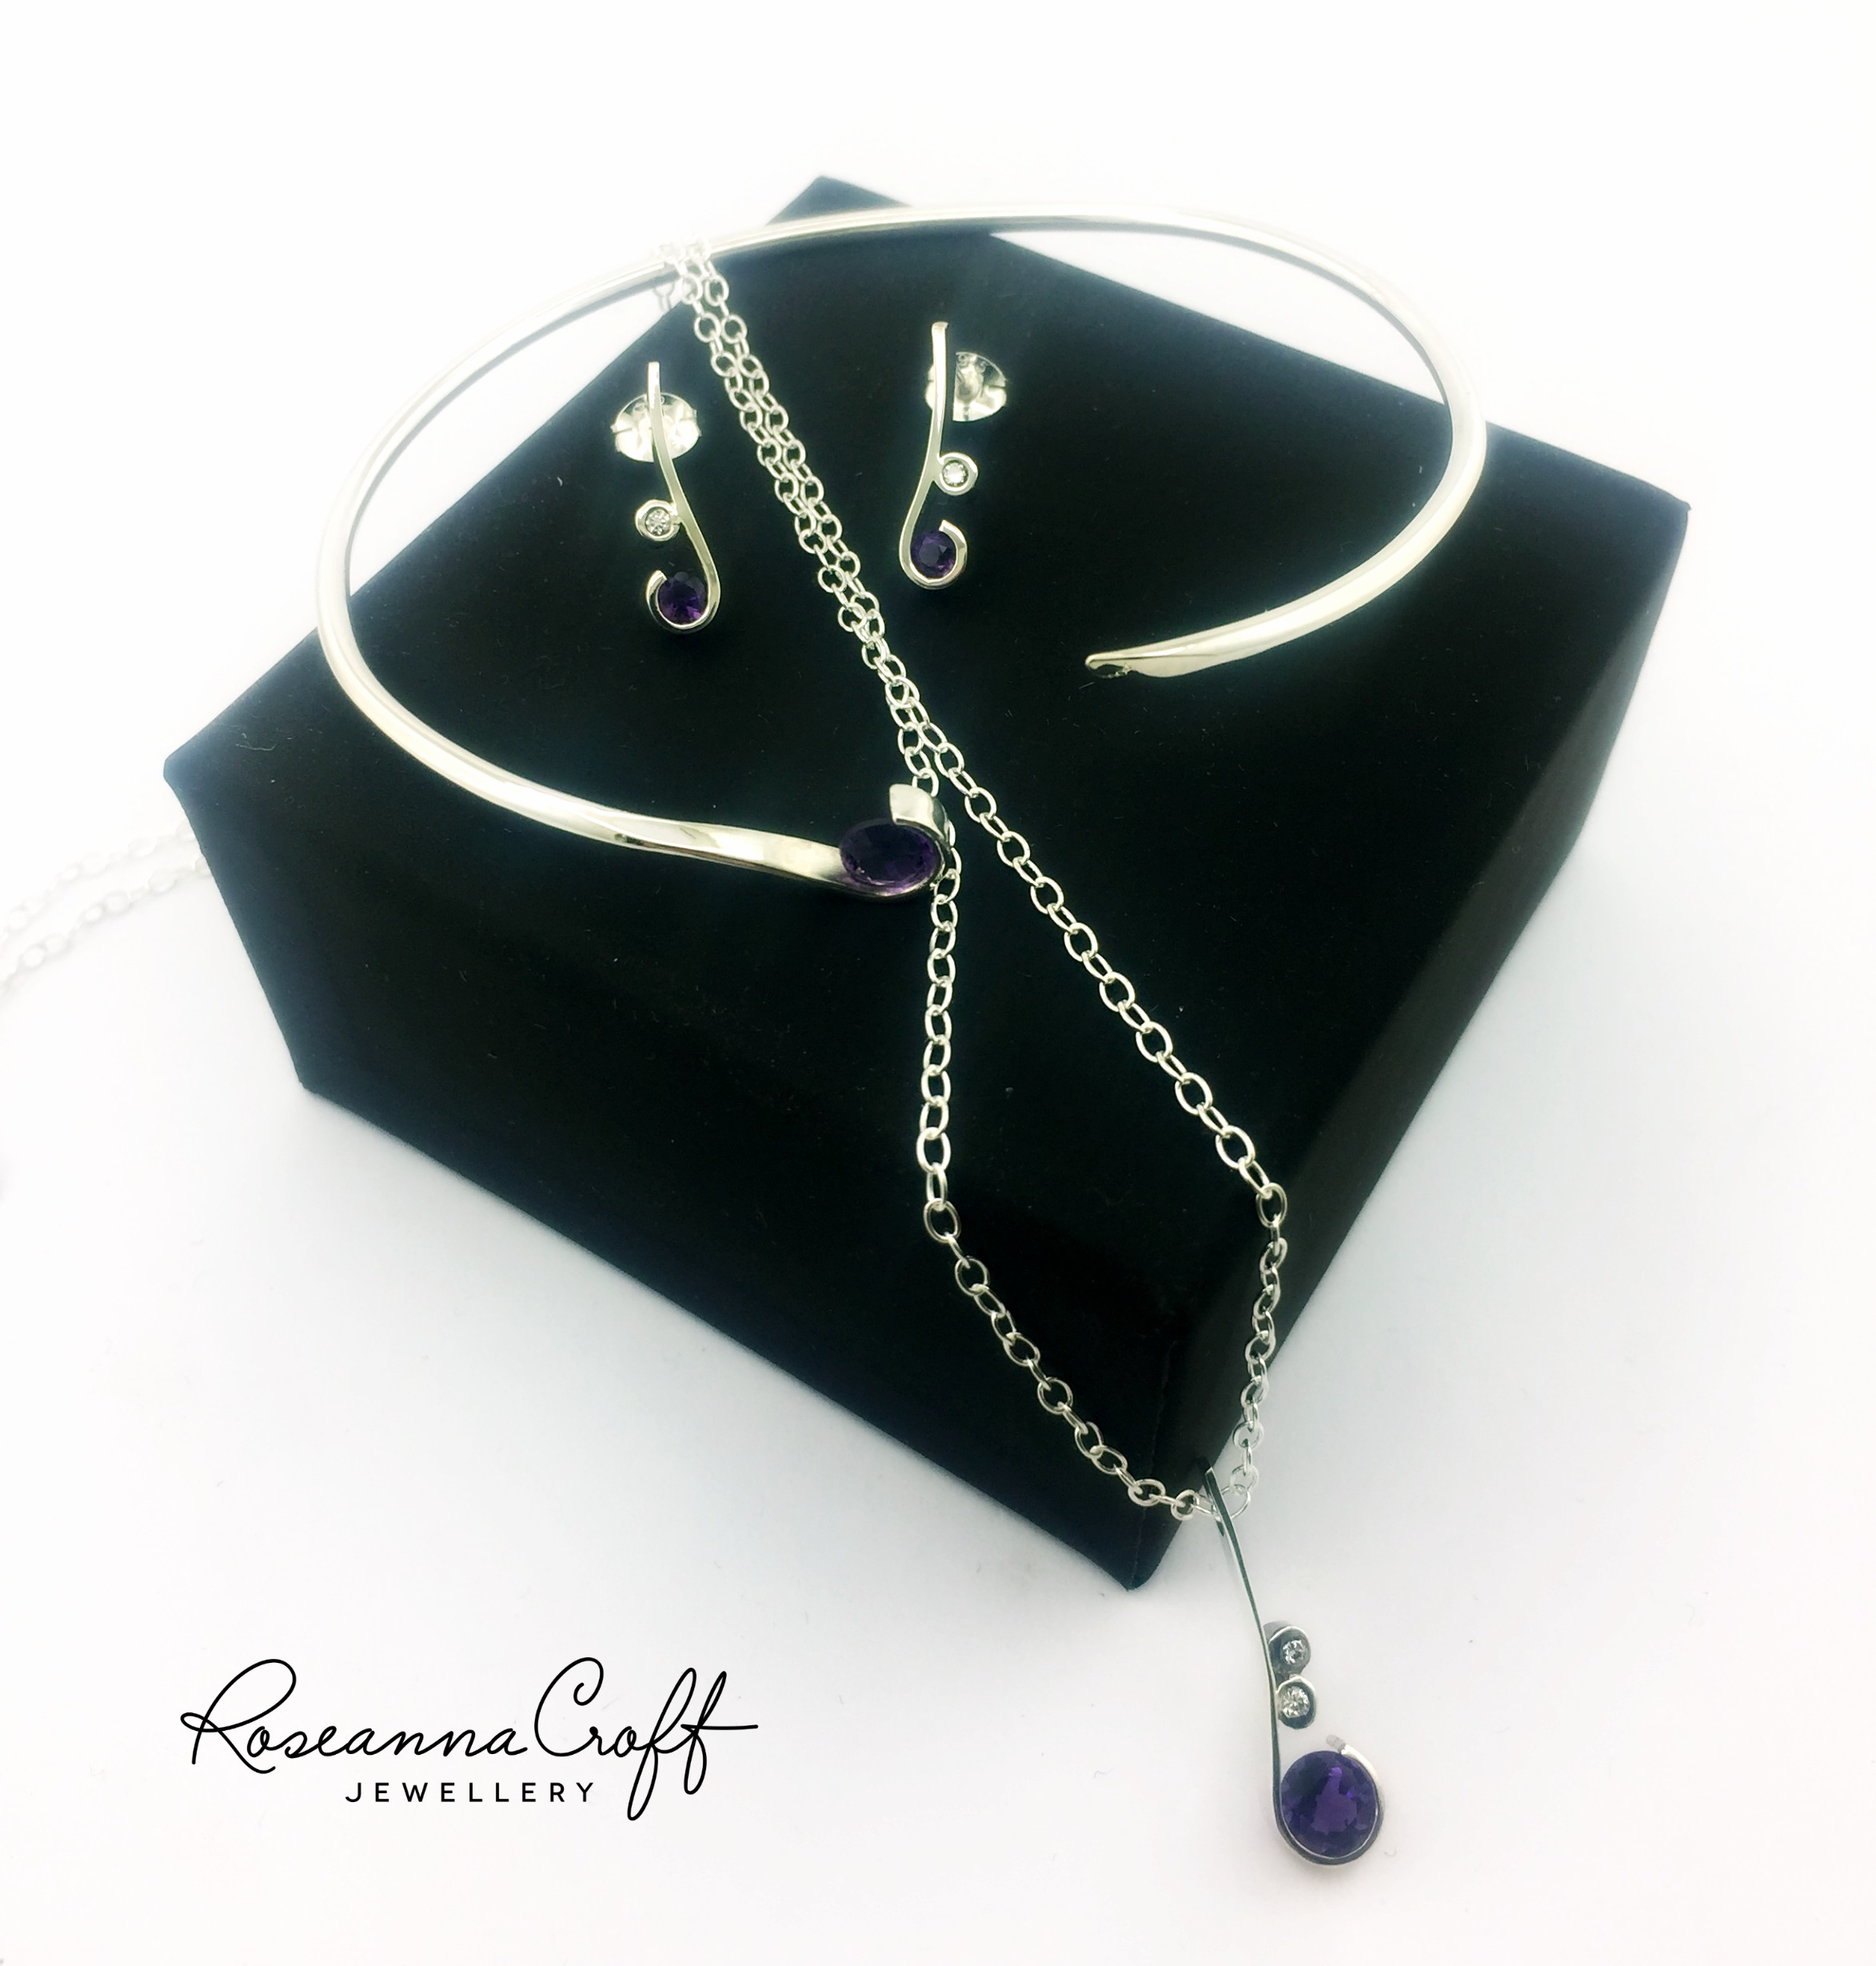 Amethyst Bespoke Bridal Jewellery by Roseanna Croft Jewellery